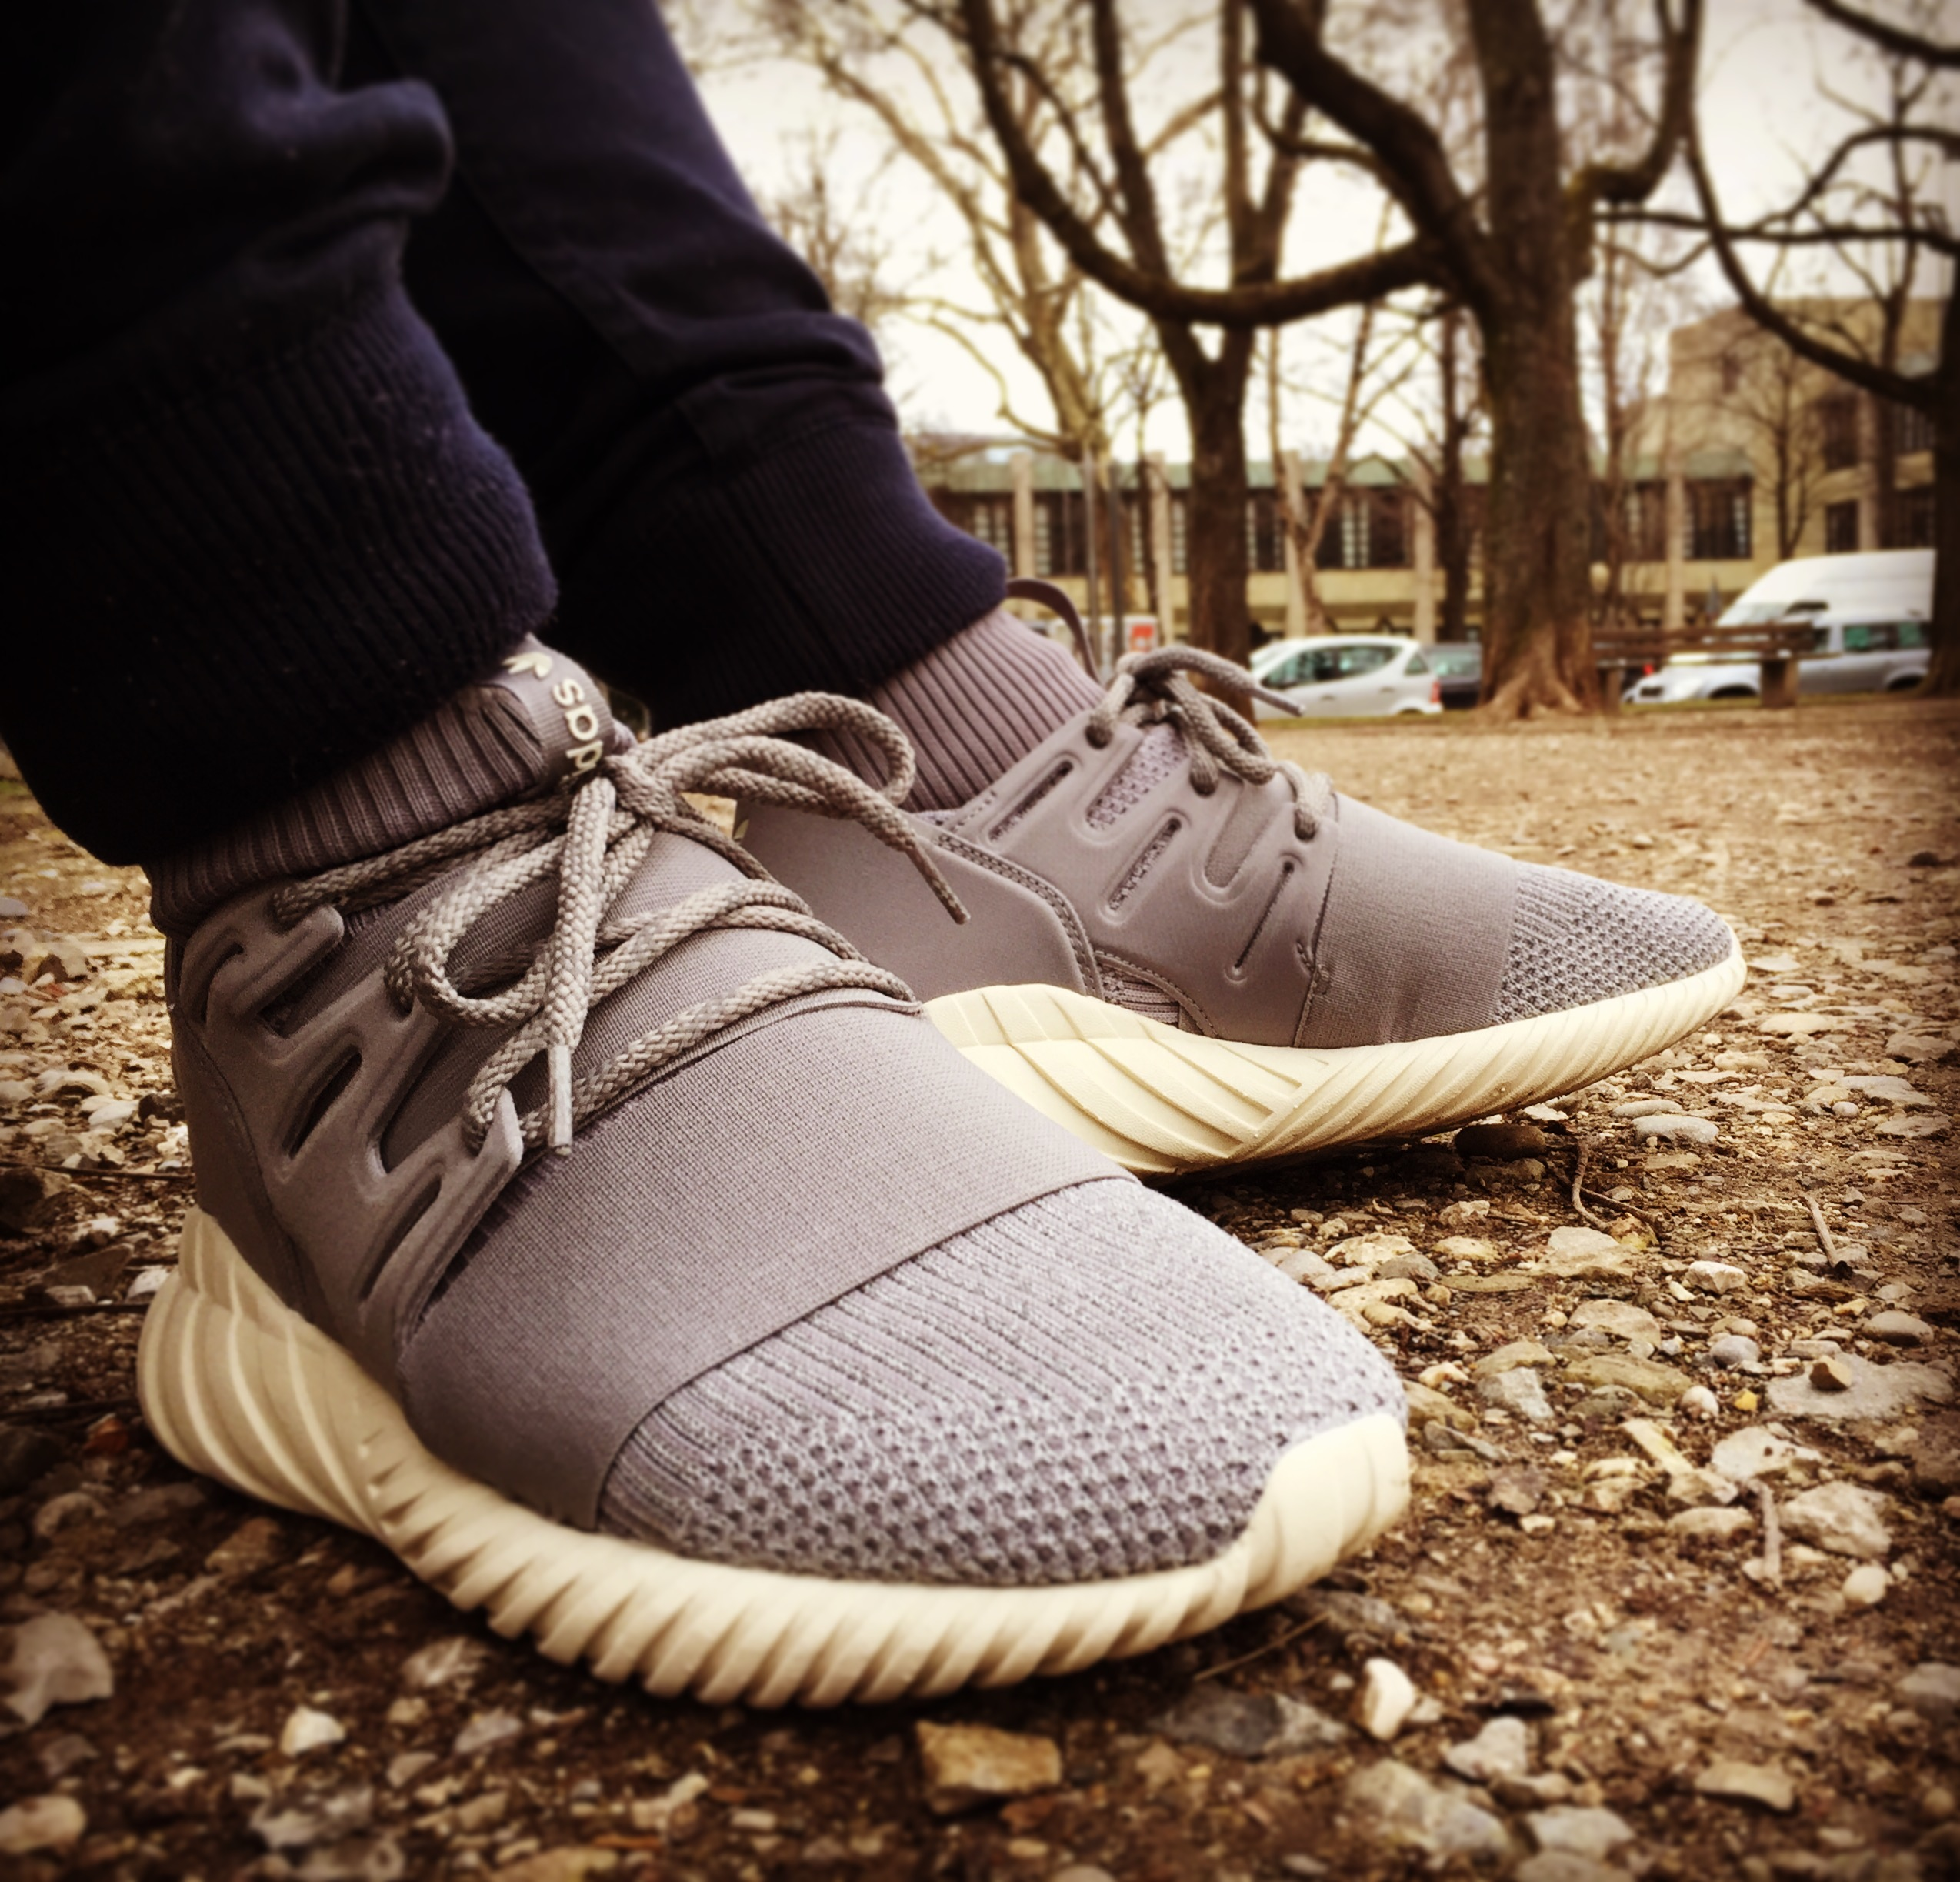 Adidas-Tubular-Doom-Reflective-Side-View-Benstah-Onfeet